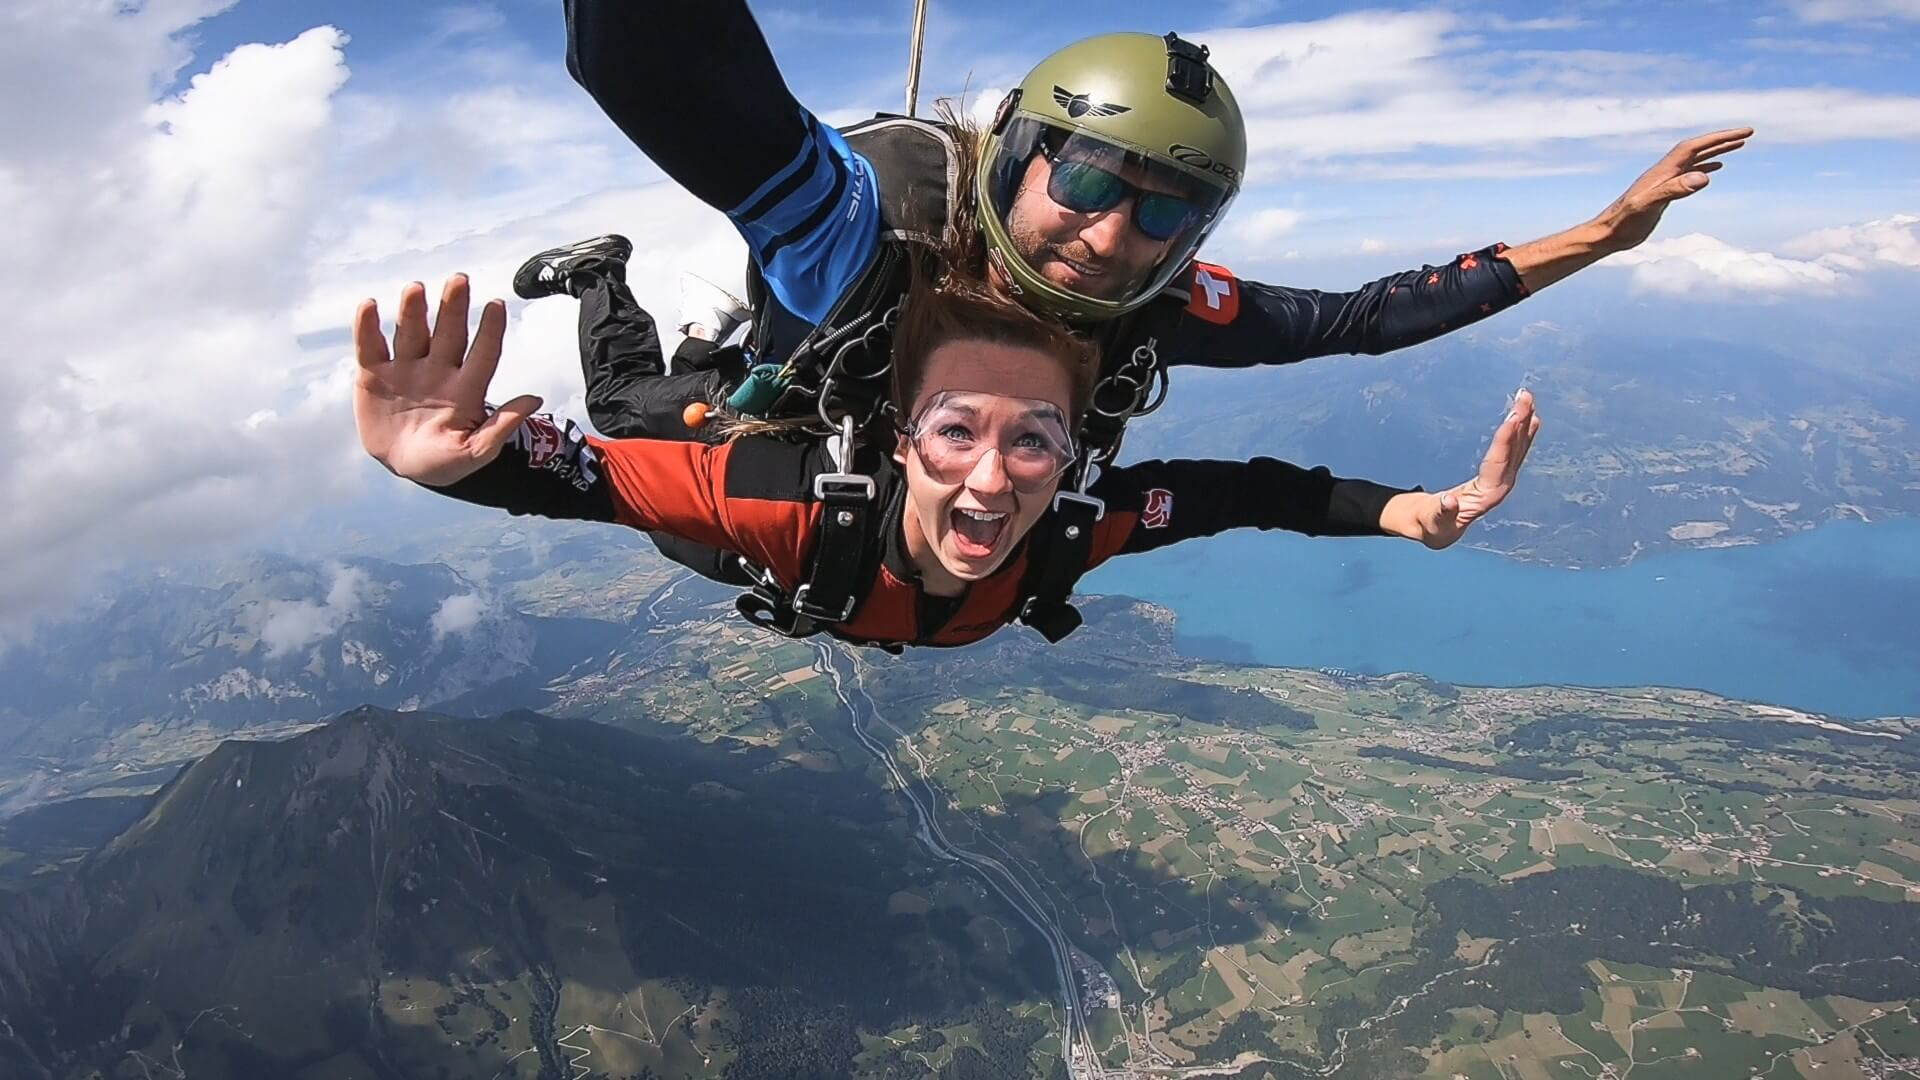 skydive-switzerland-sprung-sommer-thunersee